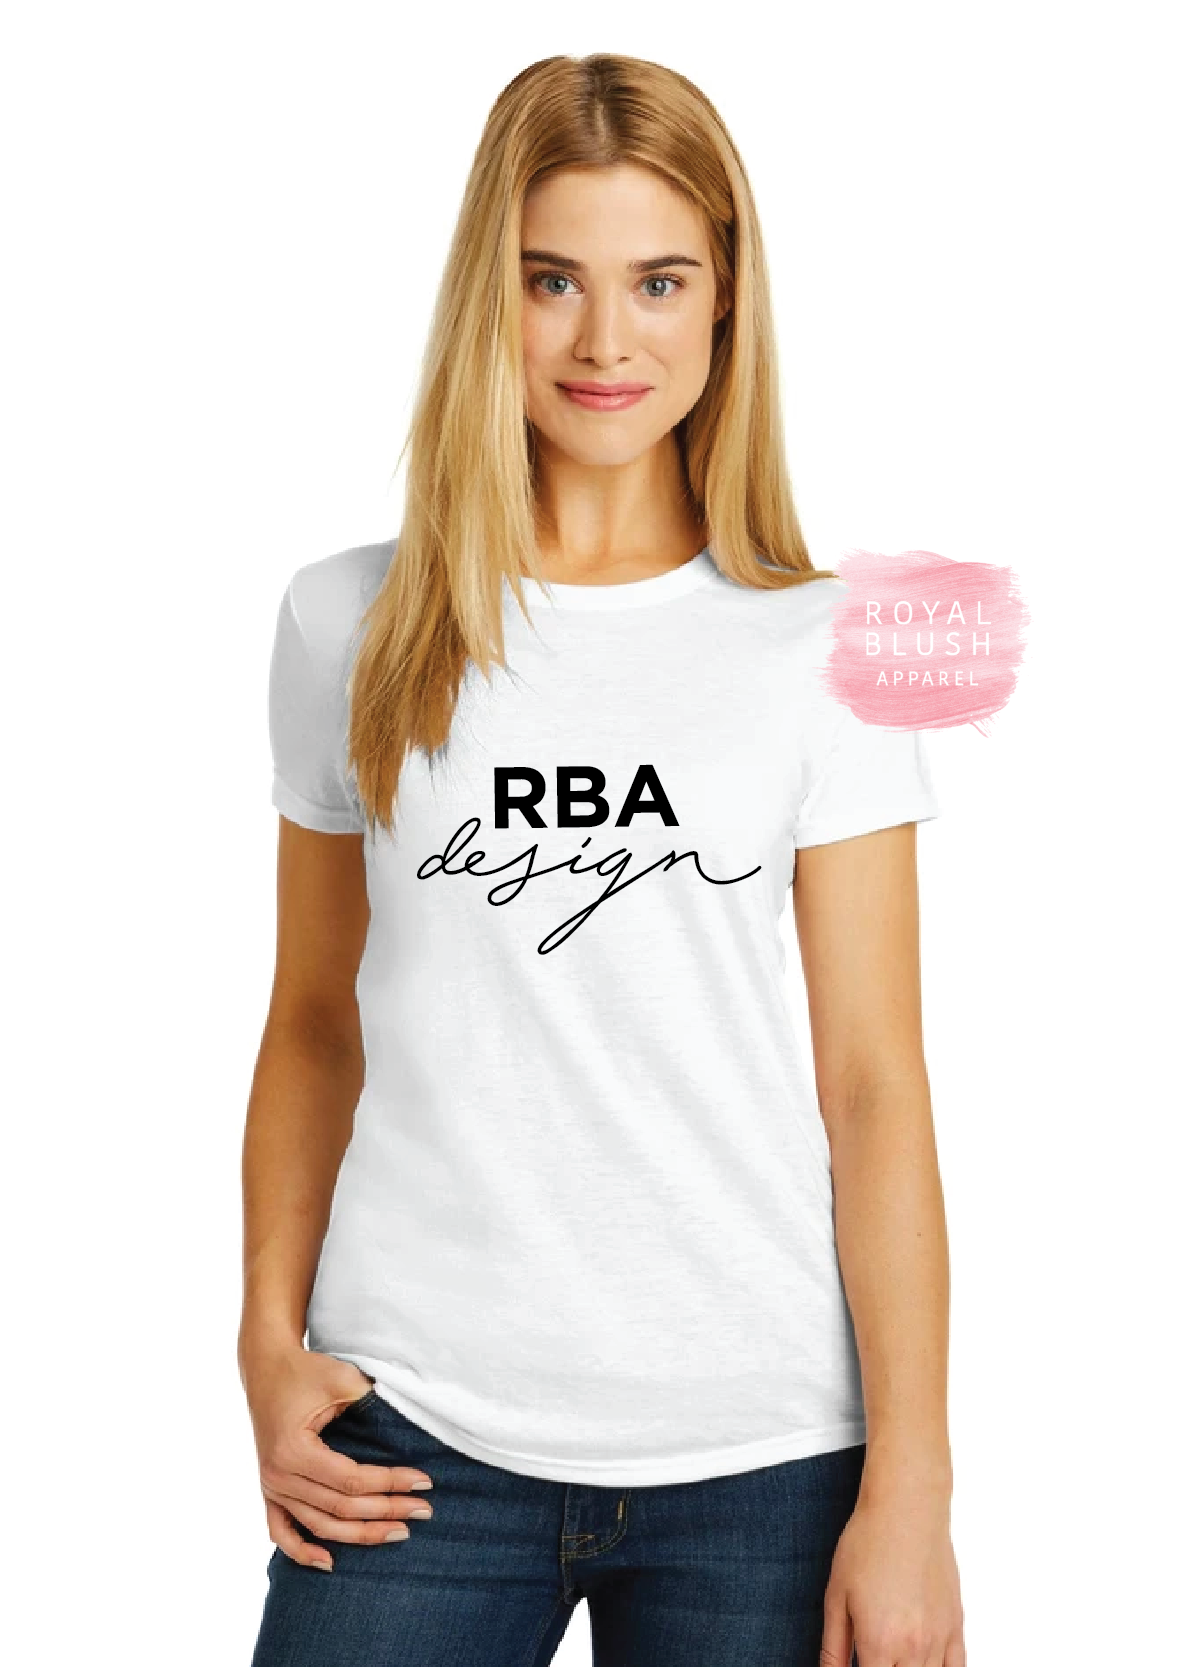 RBA Design Fitted Ladies T-Shirt